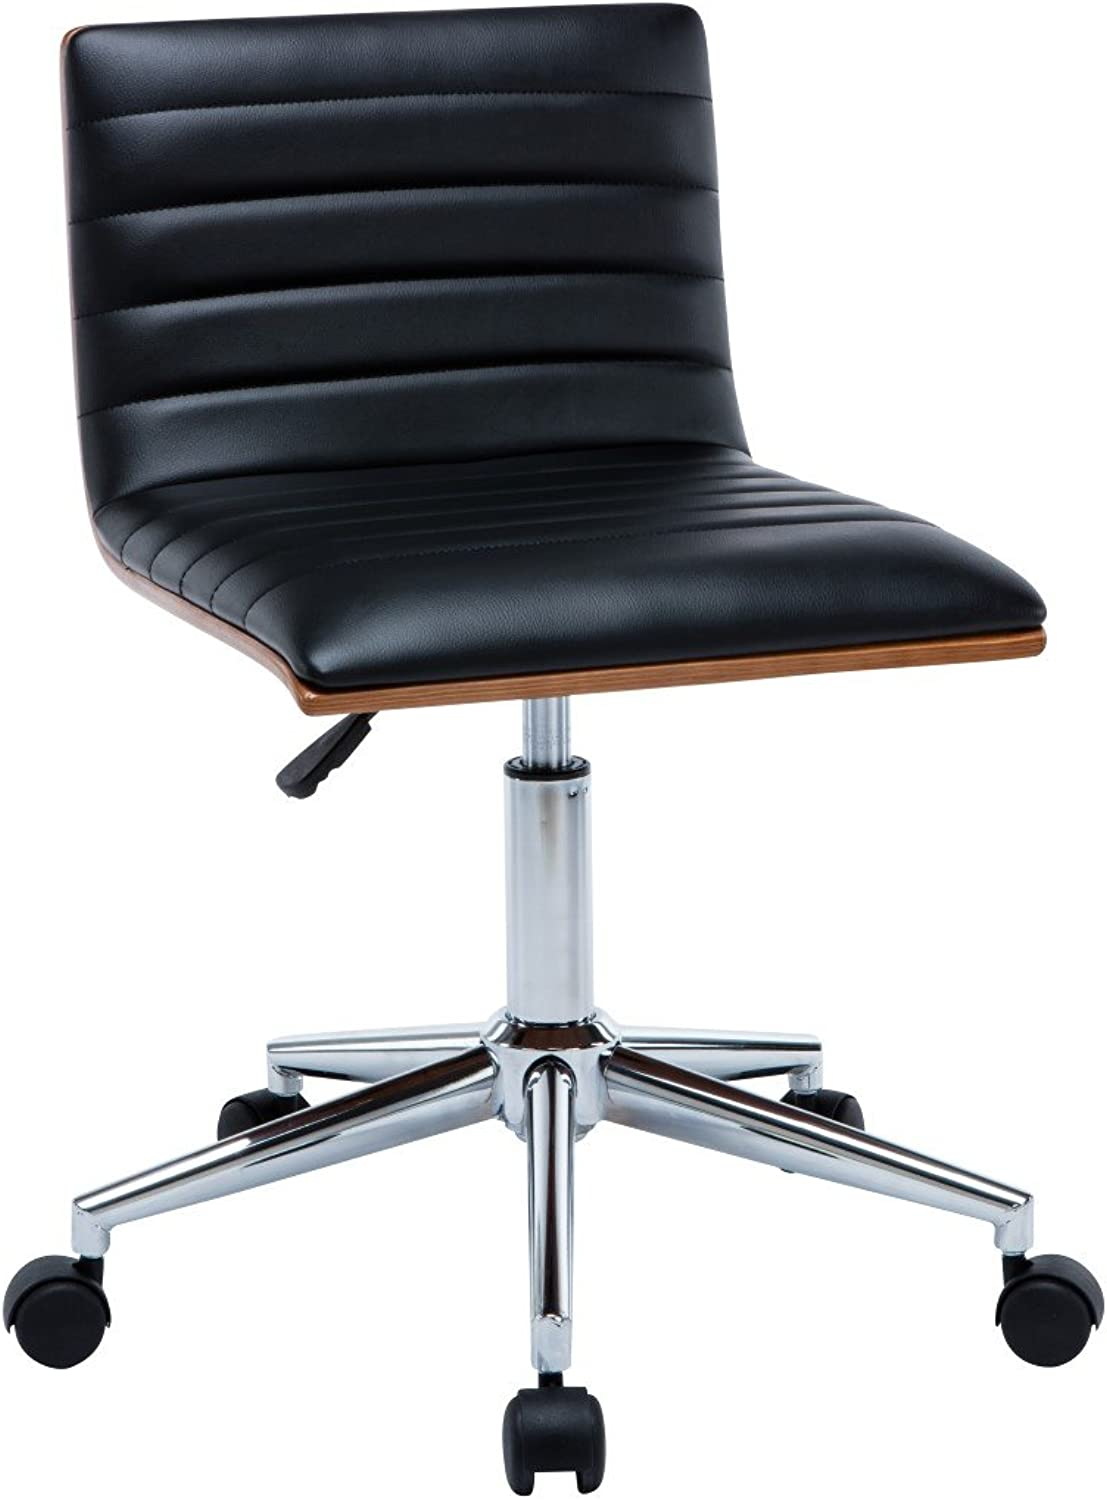 Porthos Home Alyson Office Chair, Black